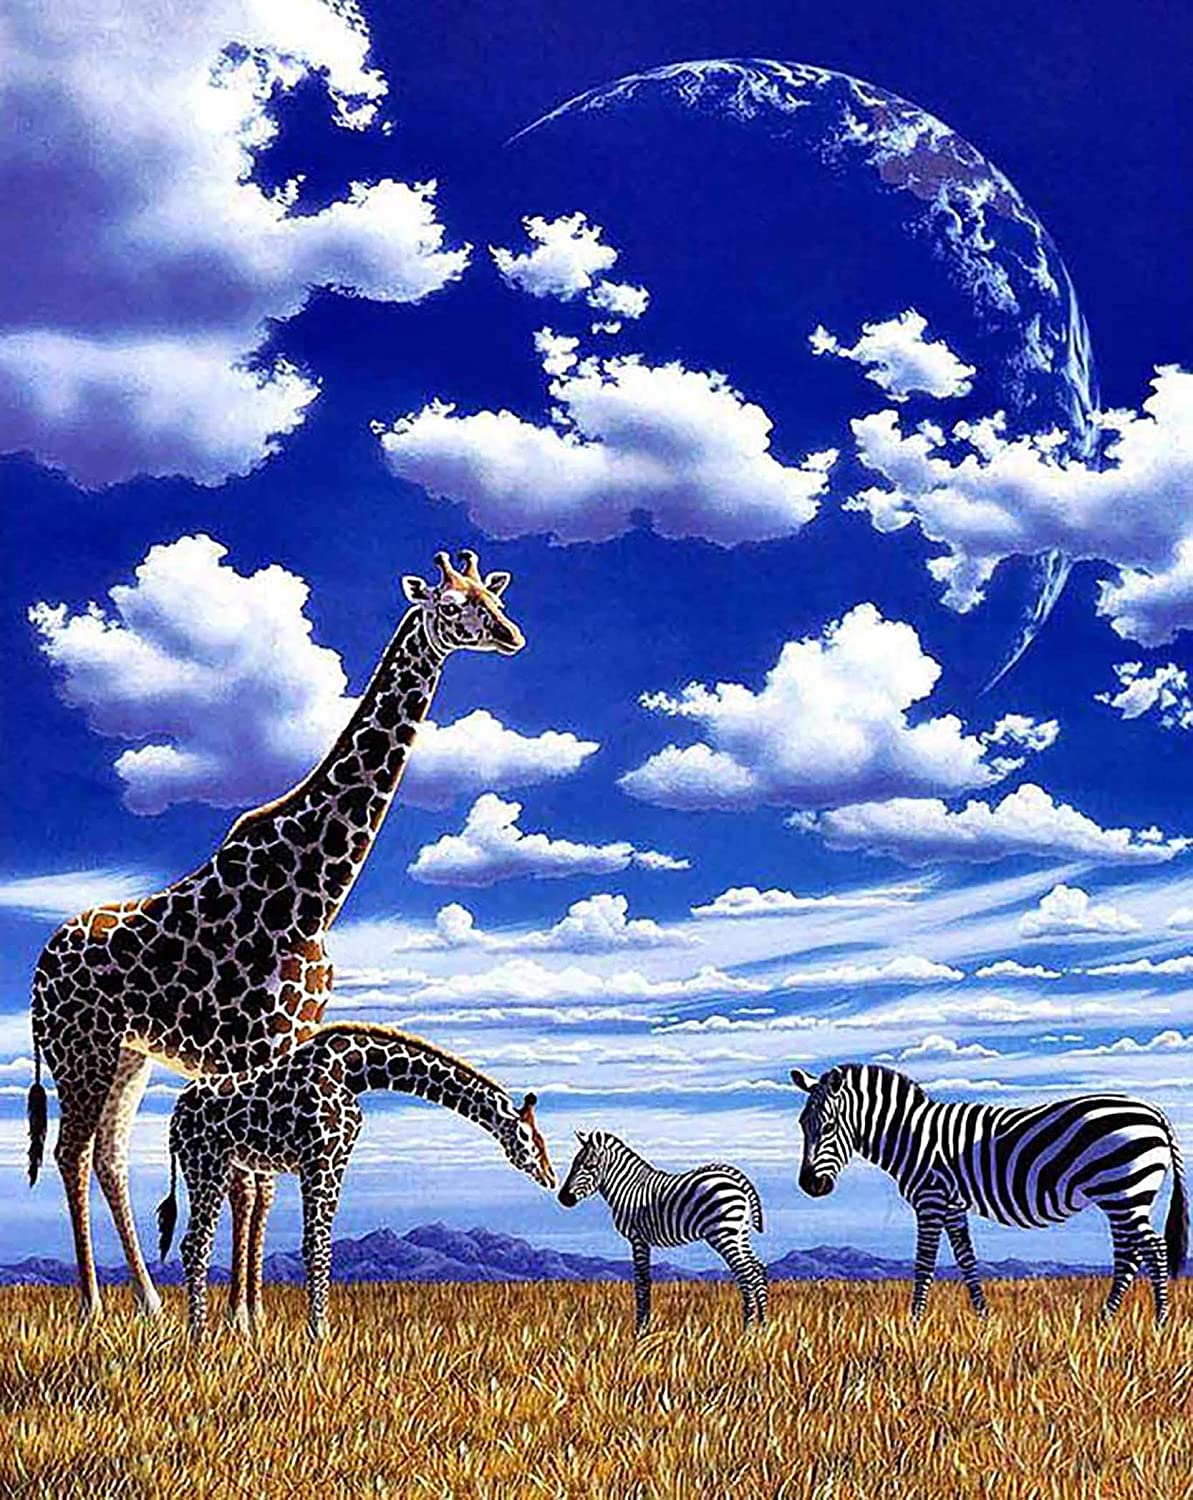 Cuneai DIY 5D Diamond Painting Animal Plants by Number Kit, Round Diamond Art Giraffe Zebra Crystal Embroidery Cross Stitch Tool, for Home Wall Decoration Gifts and Handicrafts 30x40cm / 12x16inch